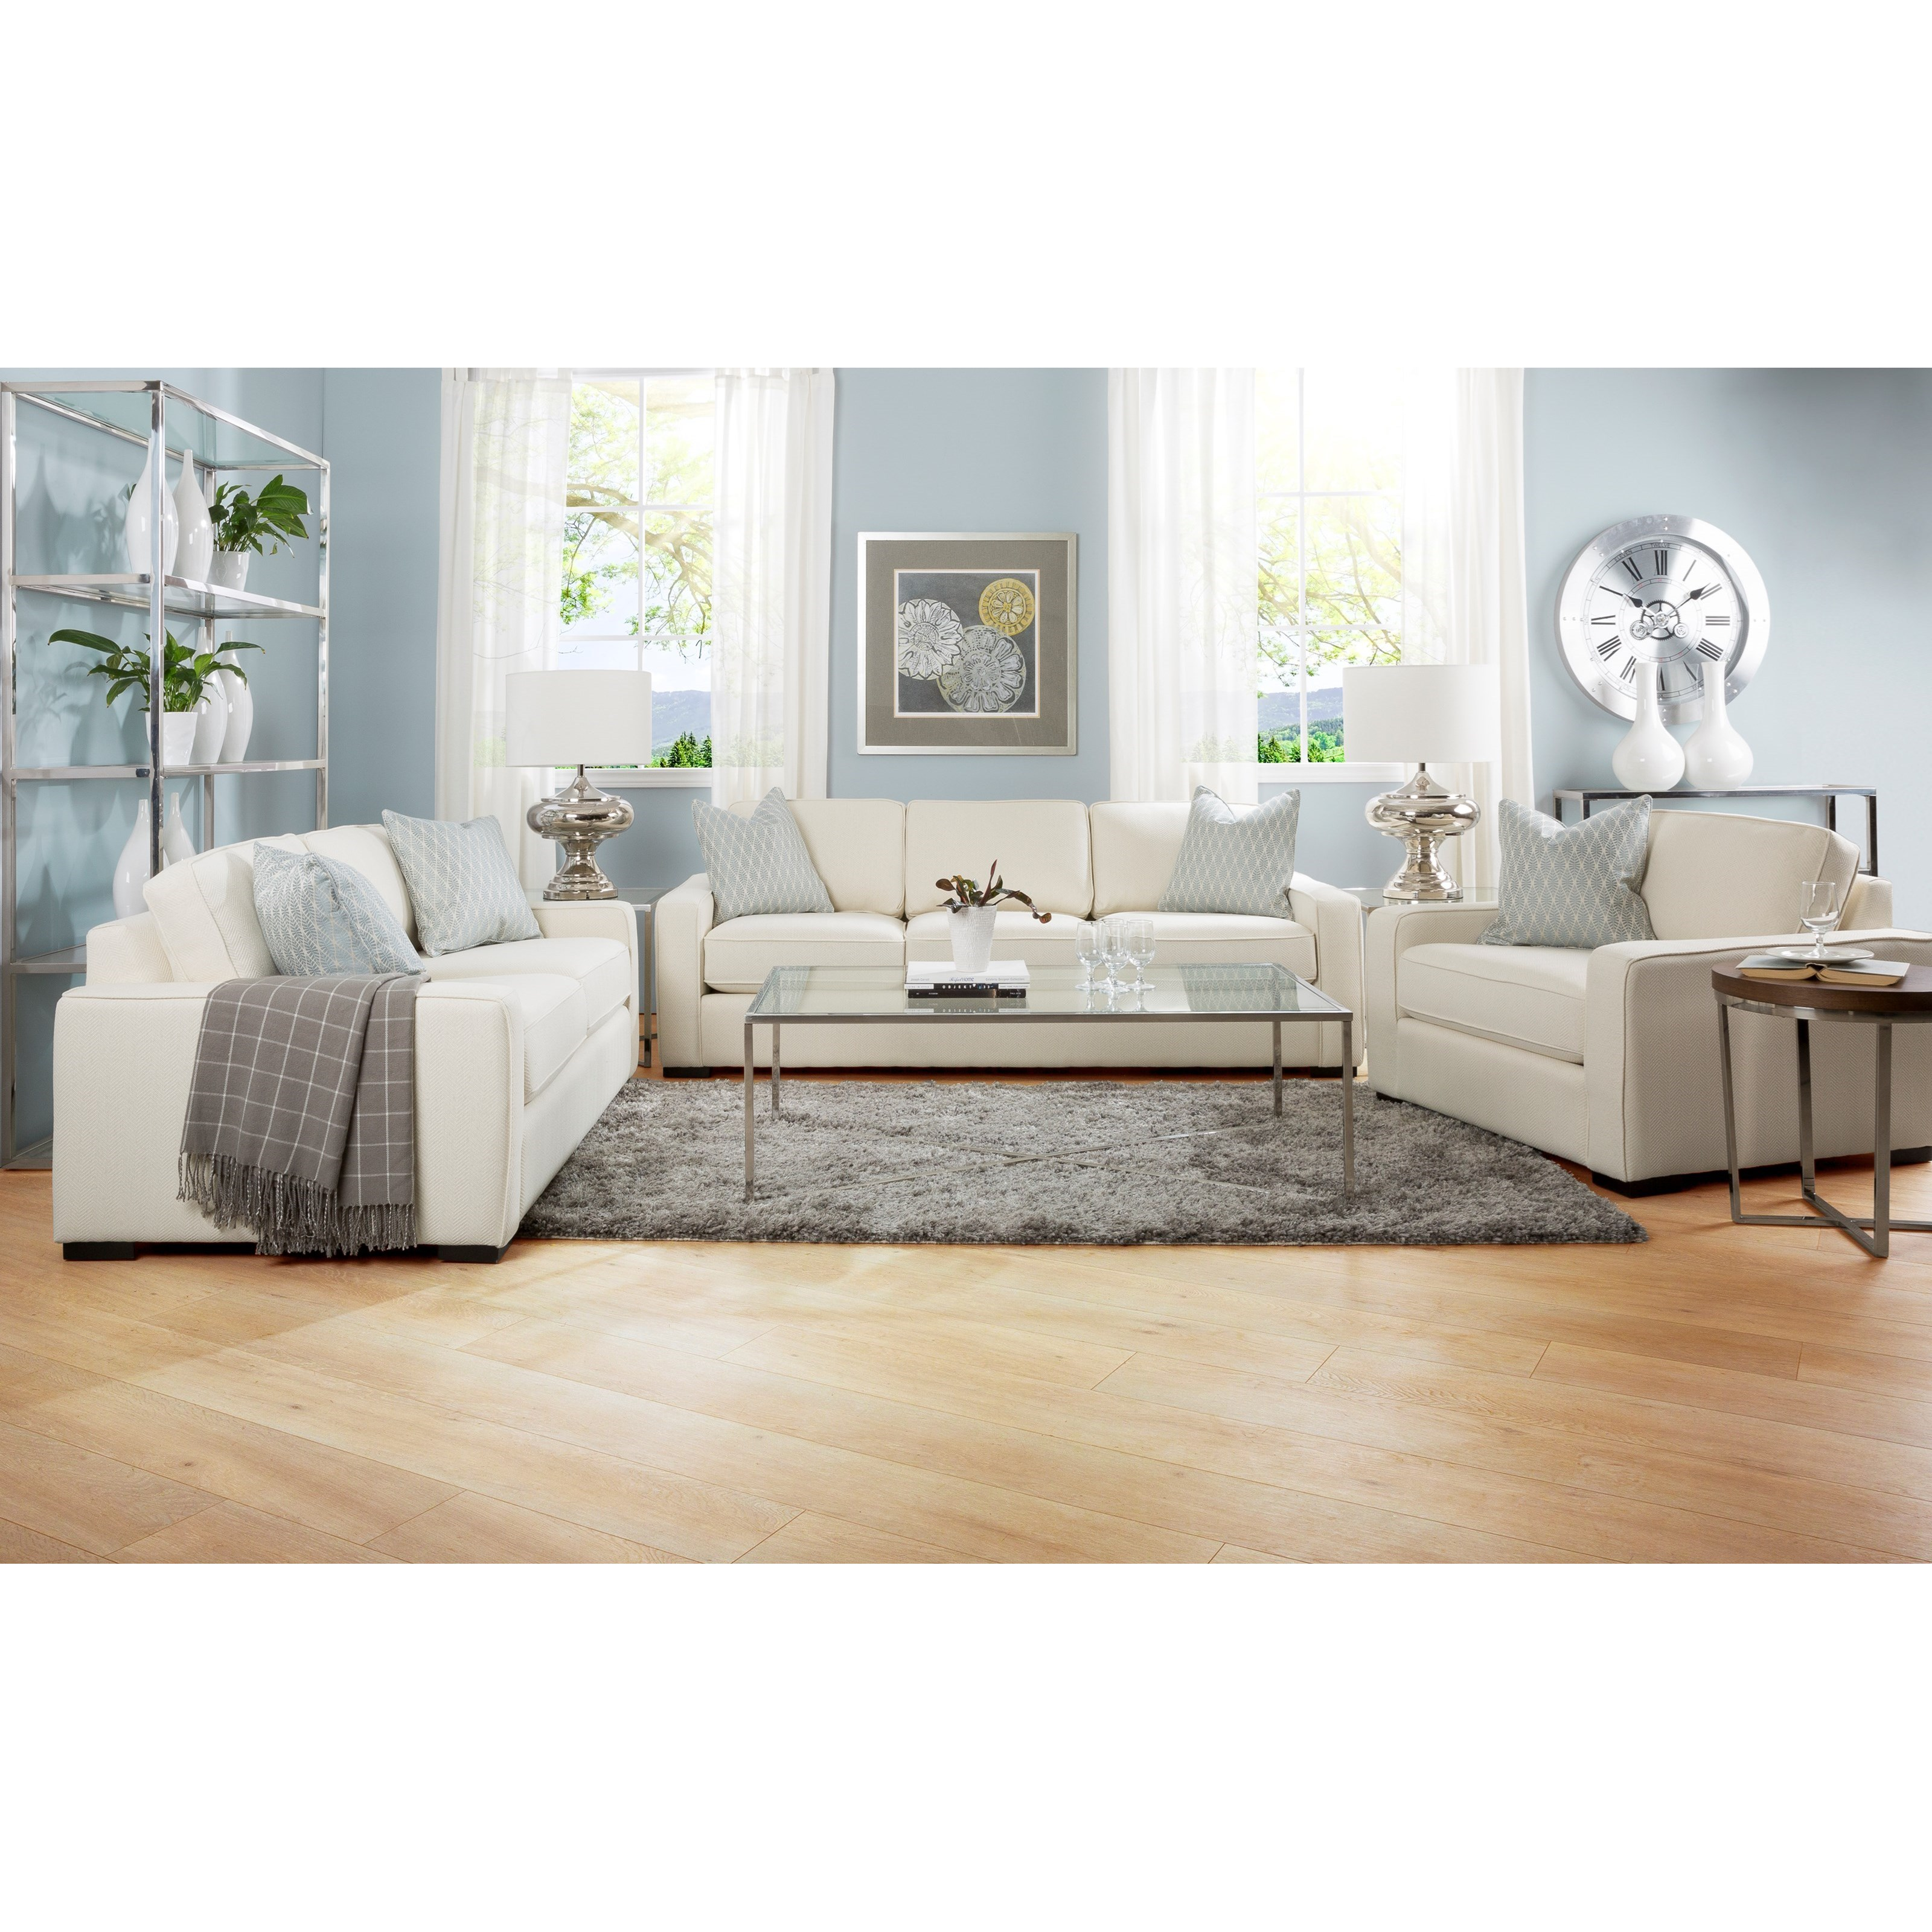 2591 Living Room Group by Decor-Rest at Rooms for Less